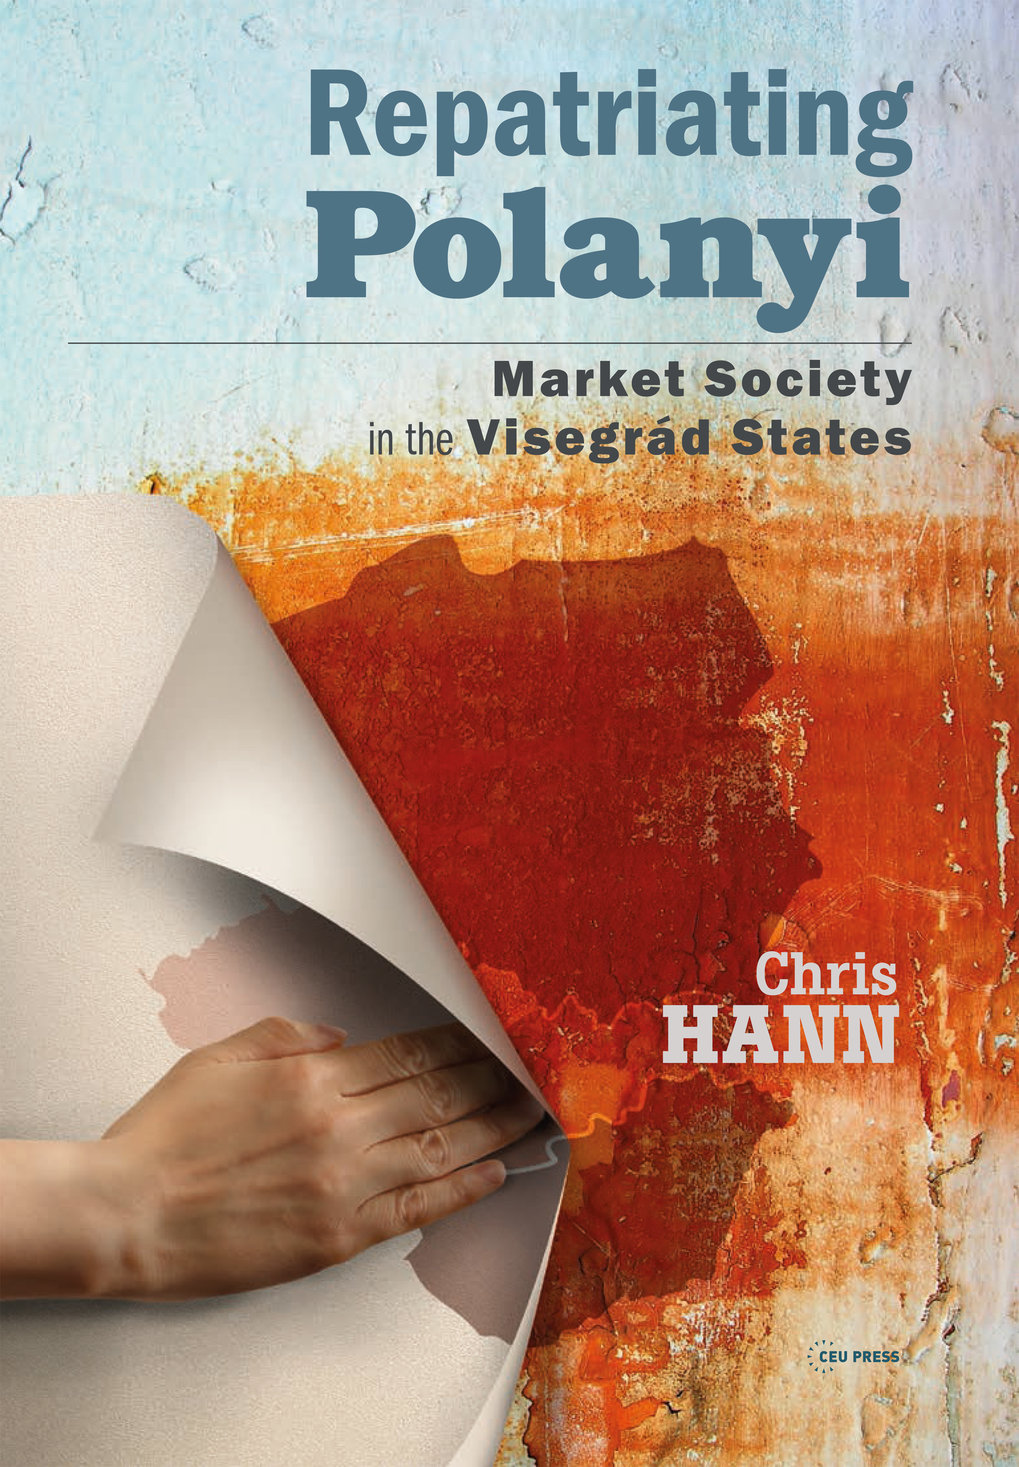 Repatriating Polanyi: market society in the Visegrád states